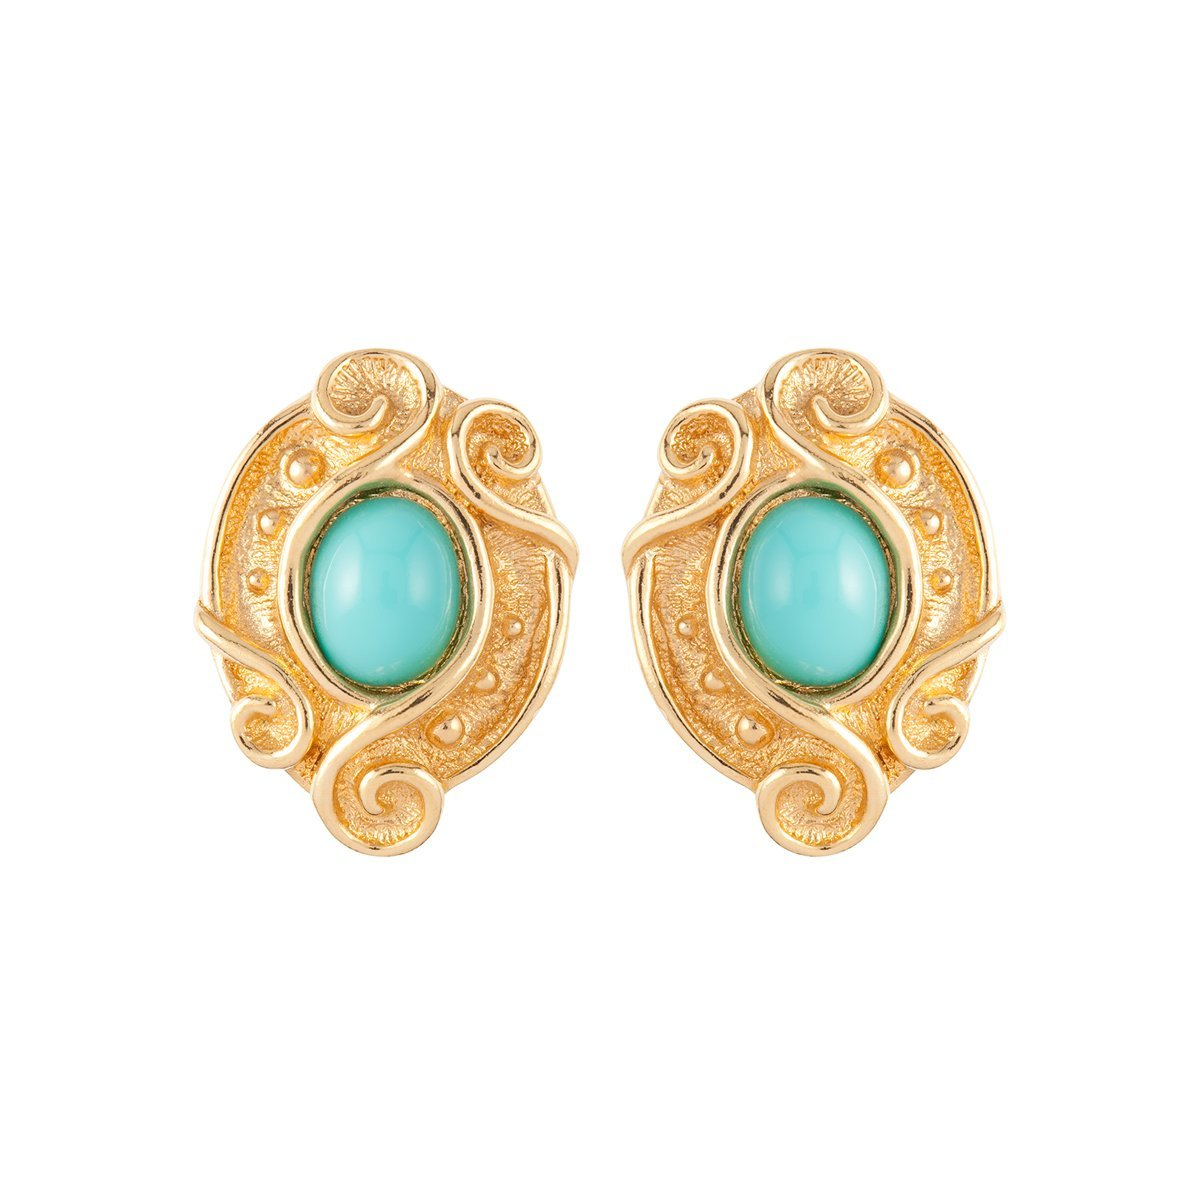 1980S Vintage Christian Dior Faux Turquoise Scroll Clip-On Earrings